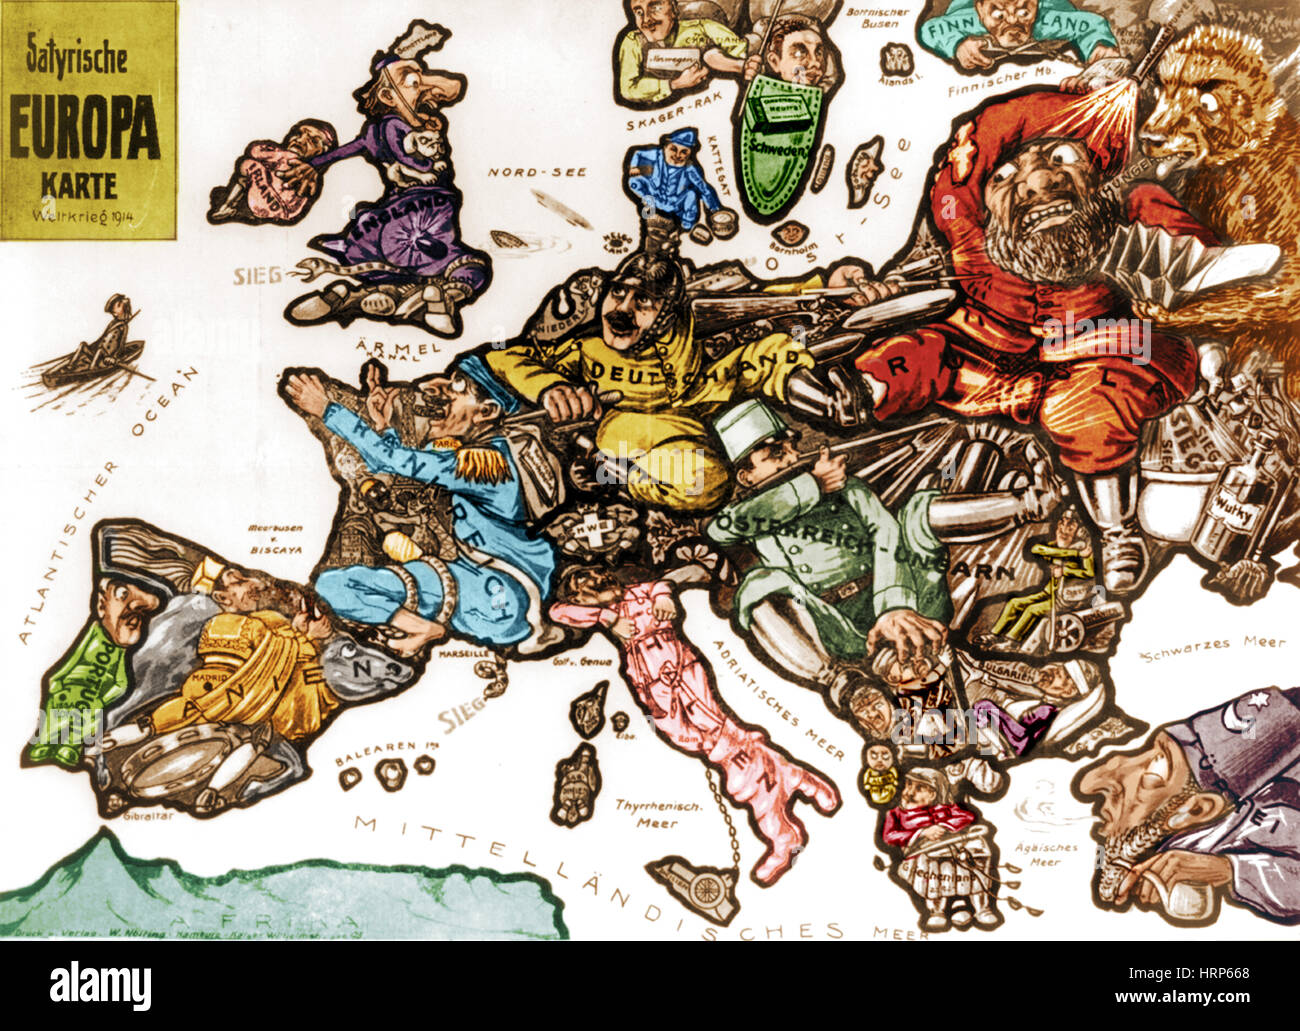 WWI, Satirical War Map of Europe, 1914 Stock Photo ...